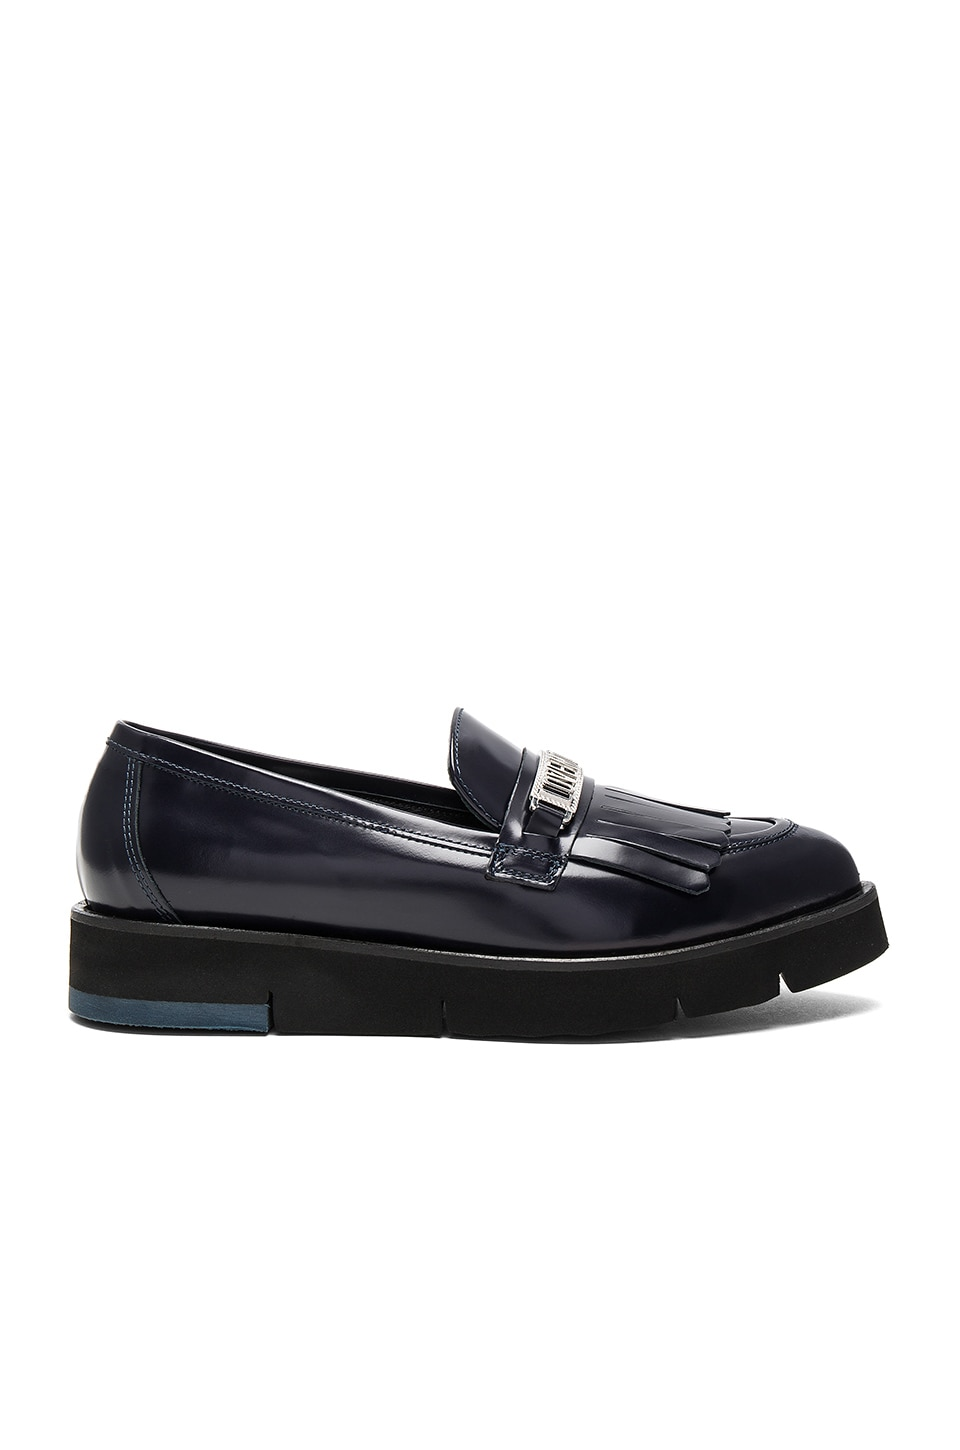 Loafer by Love Moschino